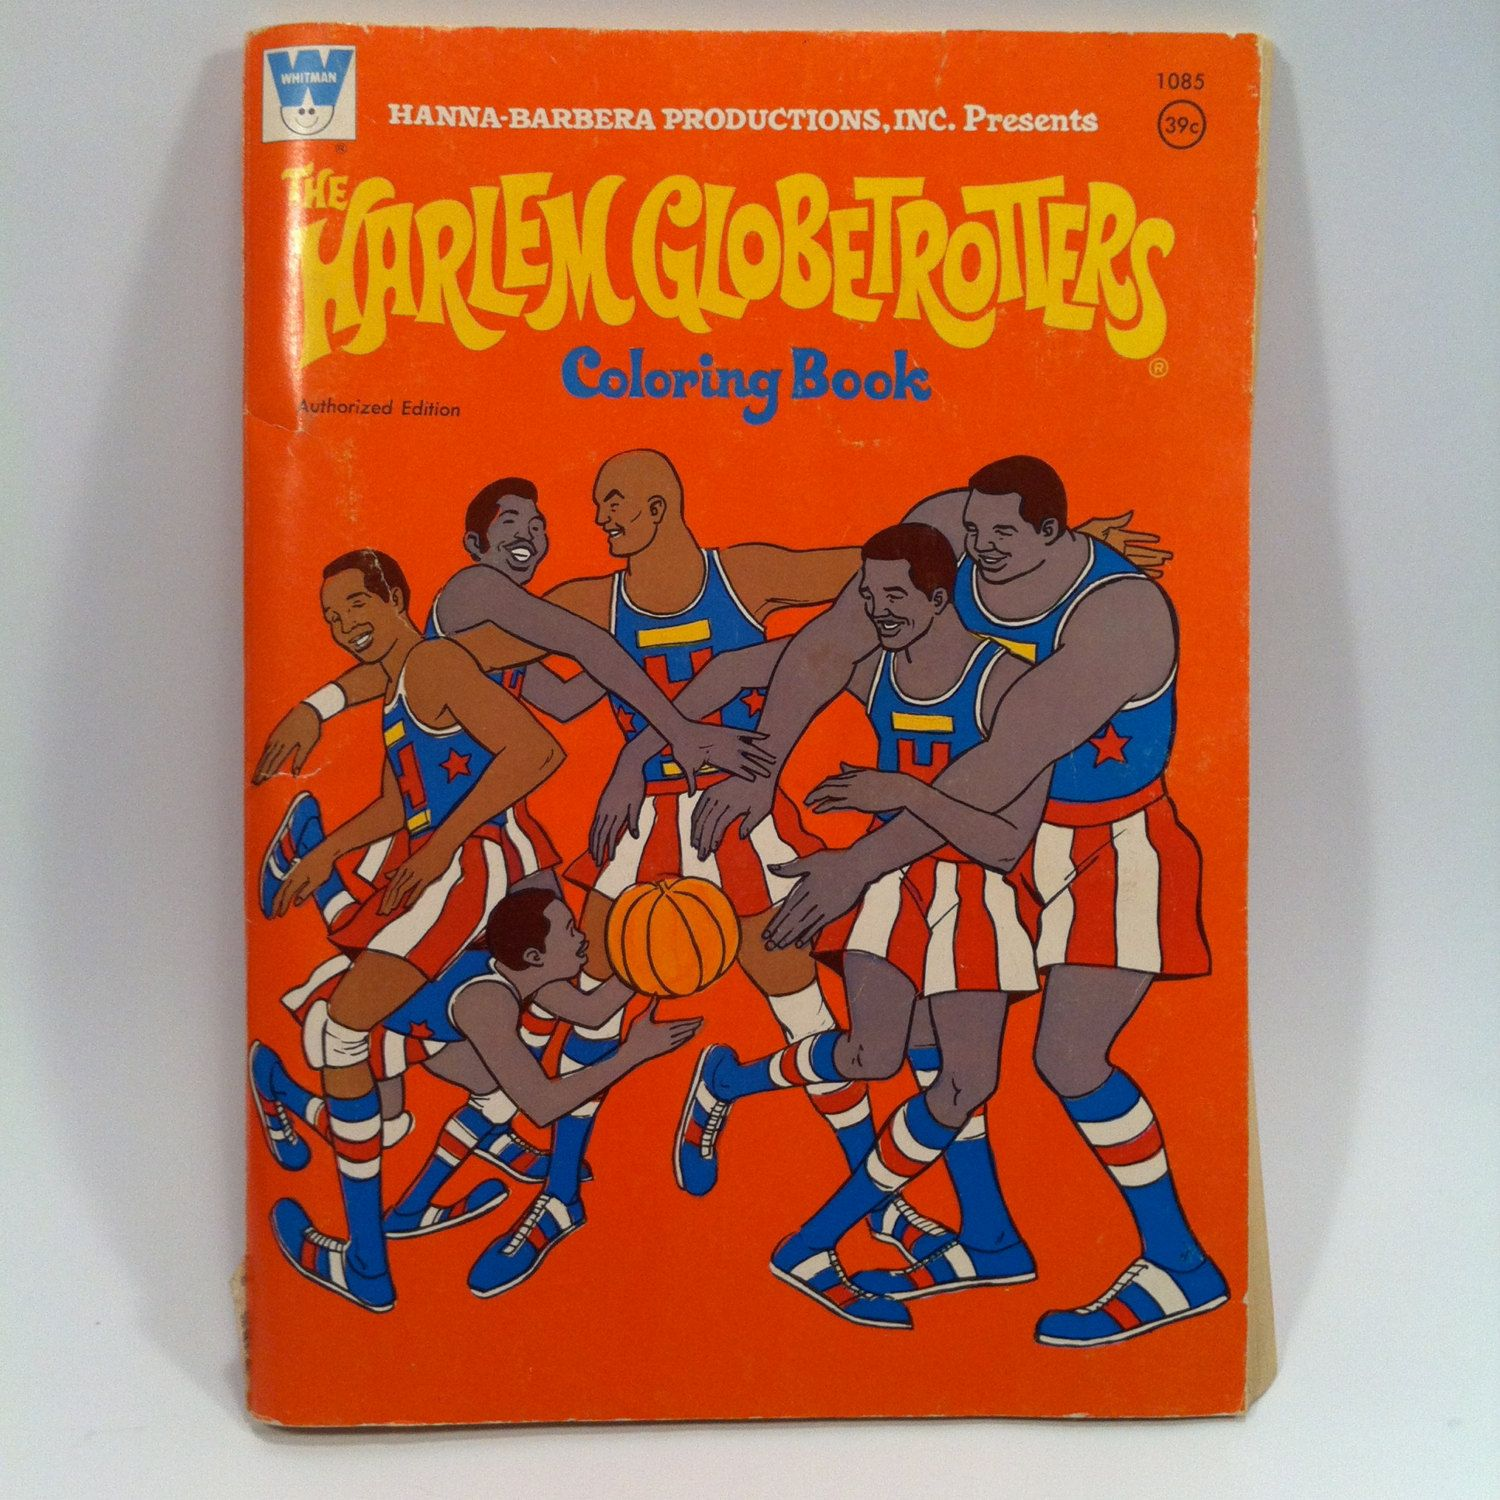 Whitman hot wheels coloring book - The Harlem Globetrotters Coloring Book 1971 Whitman Hanna Barbera Basketball By Vintagebaron On Etsy